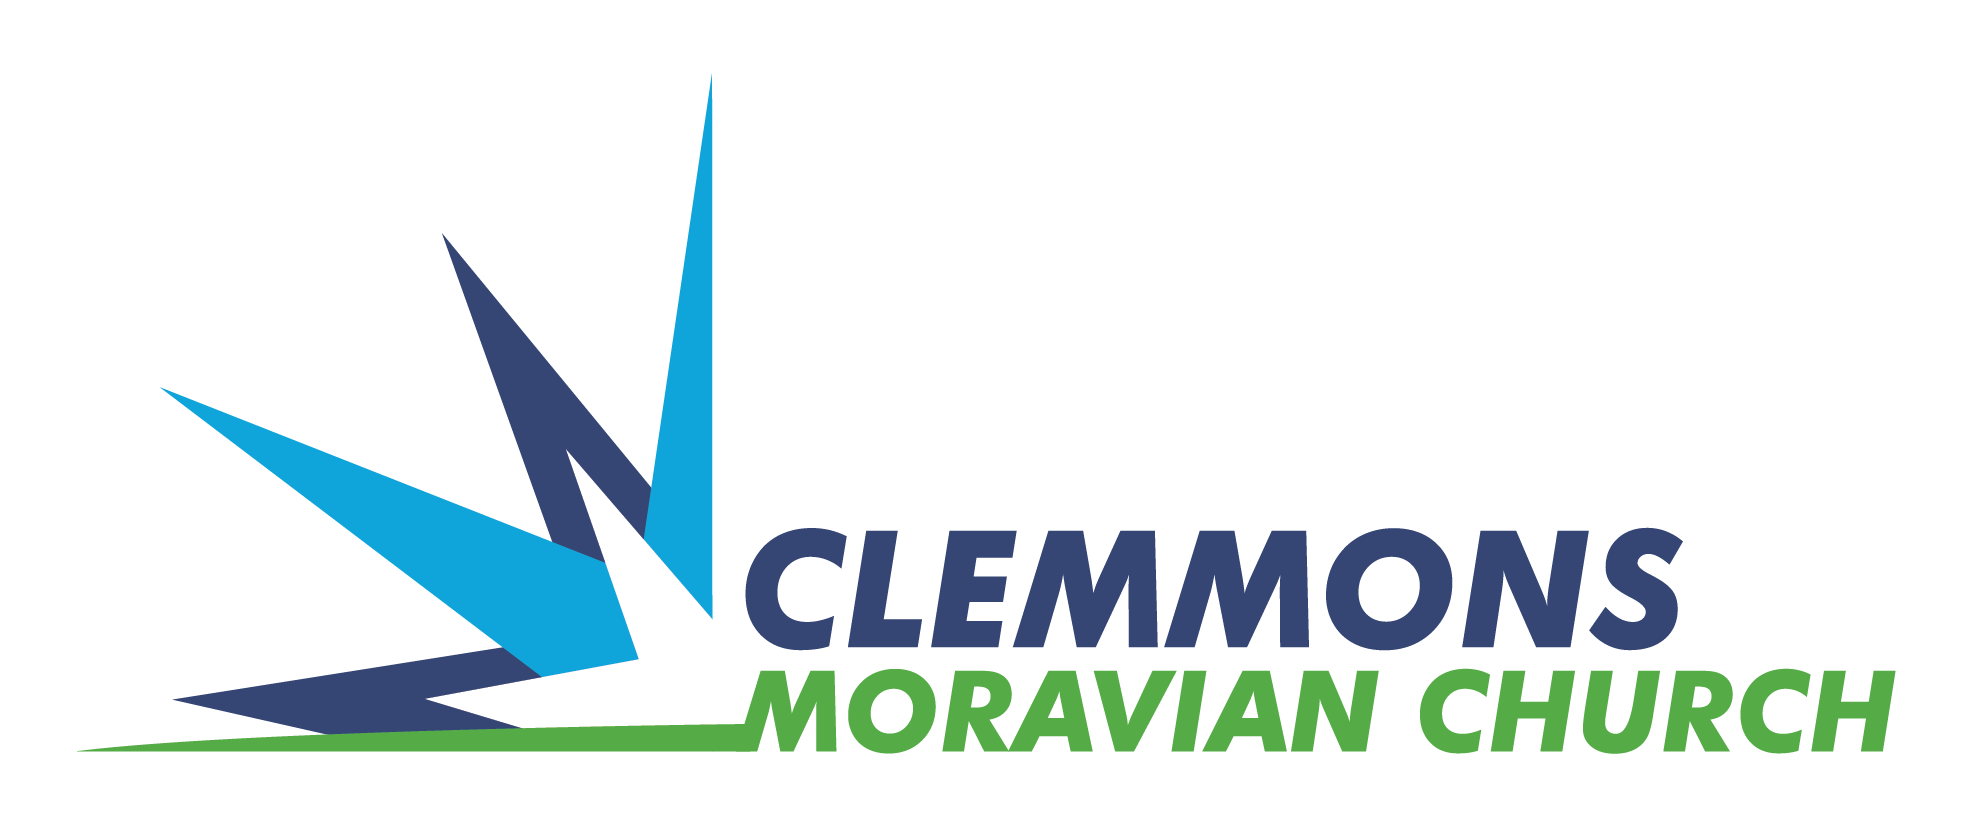 Clemmons Moravian Church